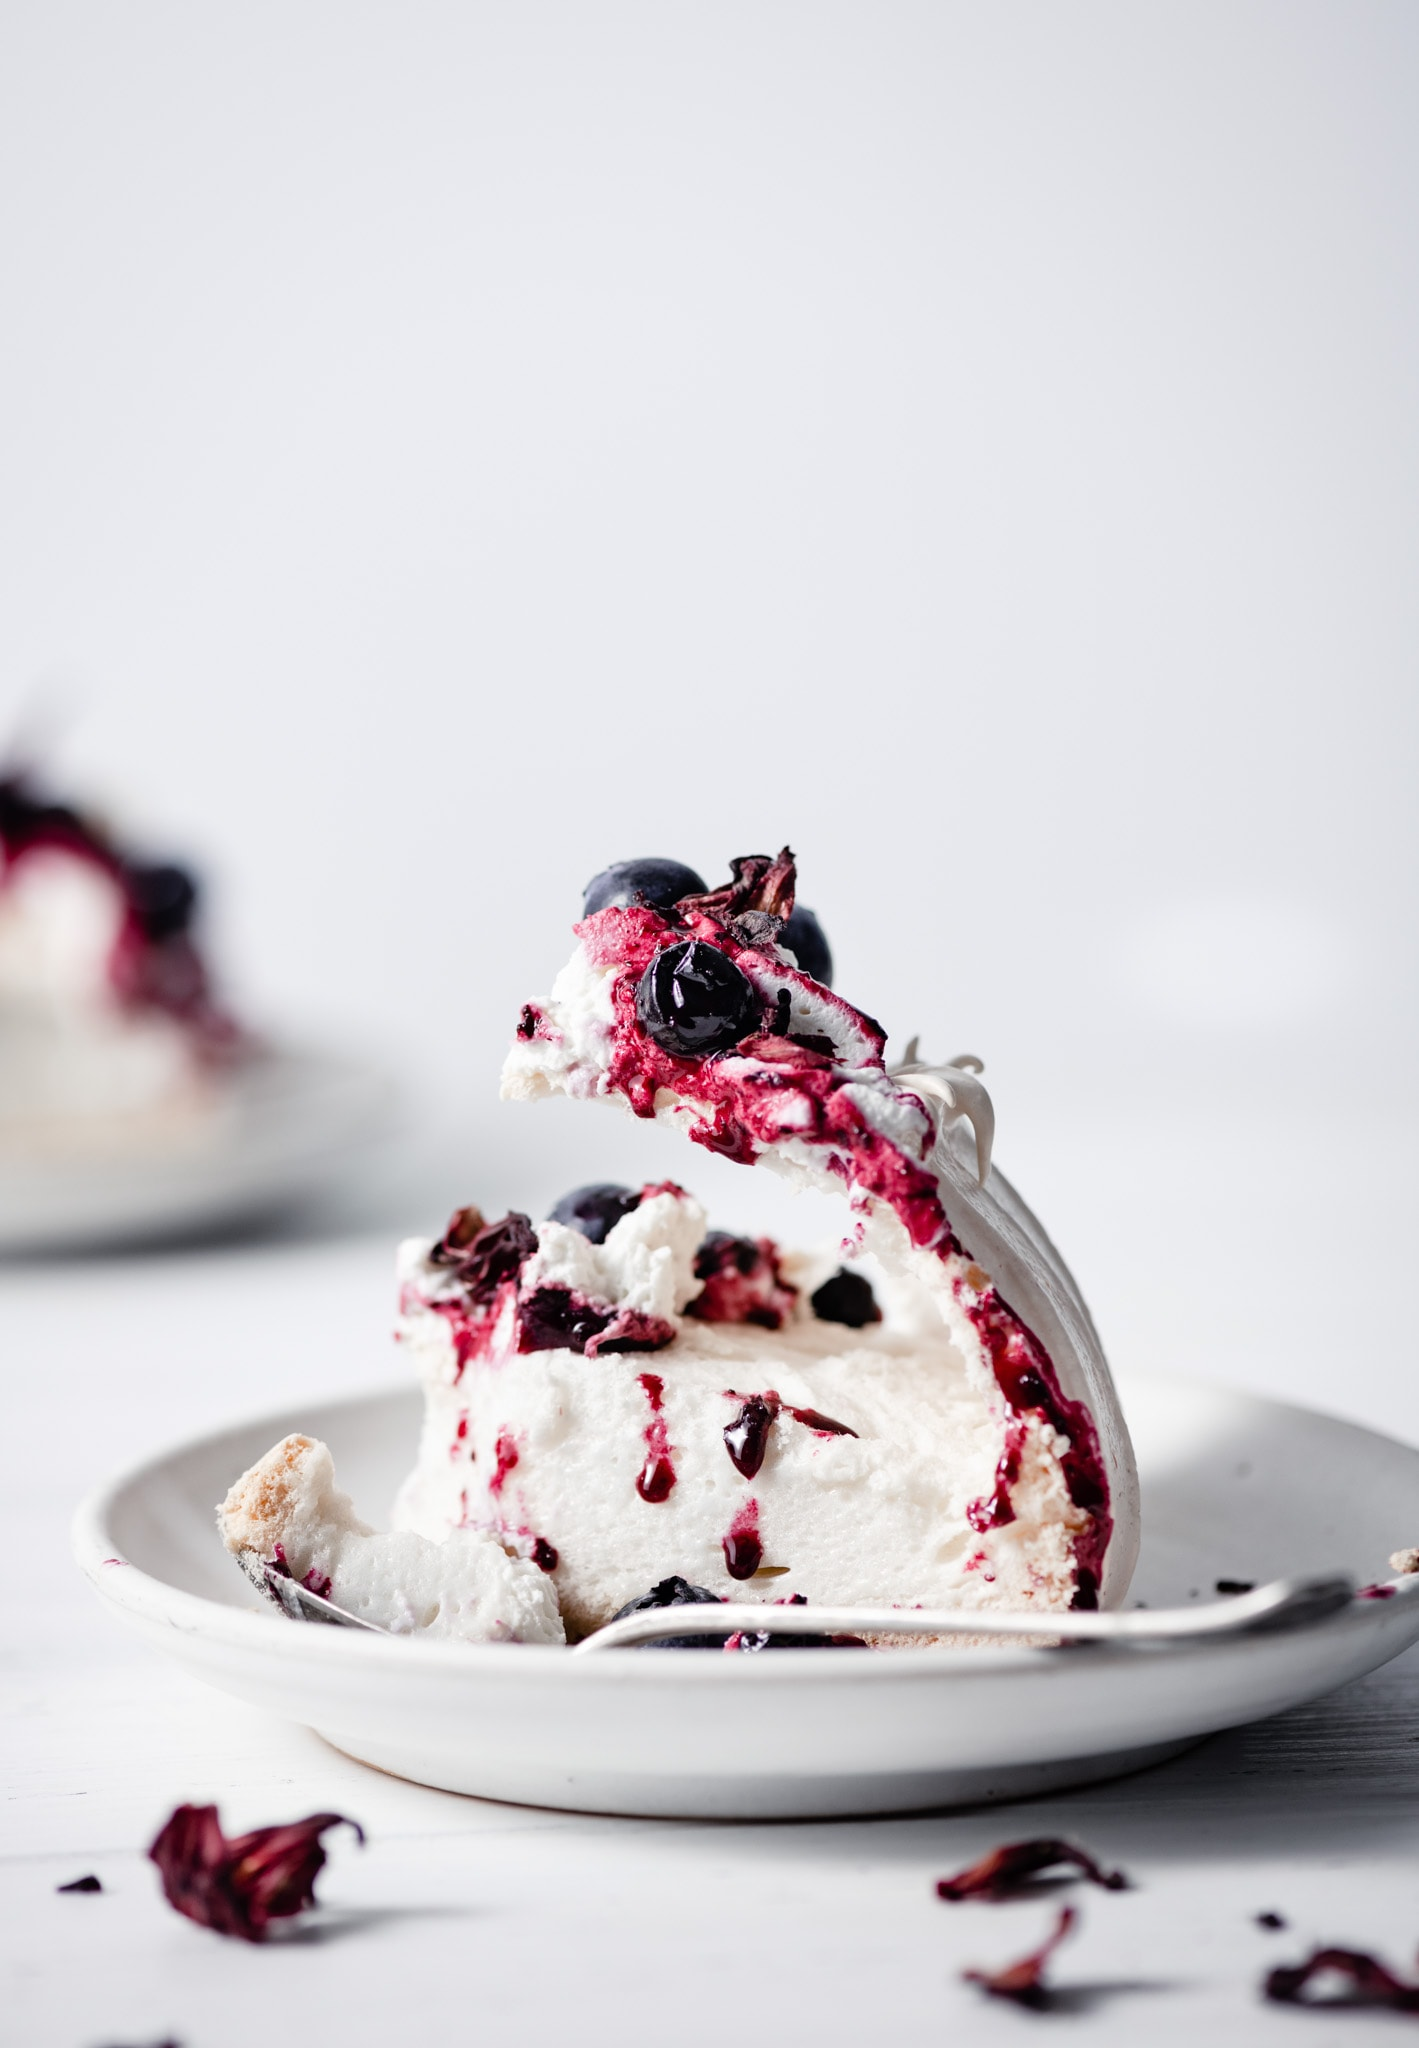 Marshmallow center meringue cake with blueberry compote.